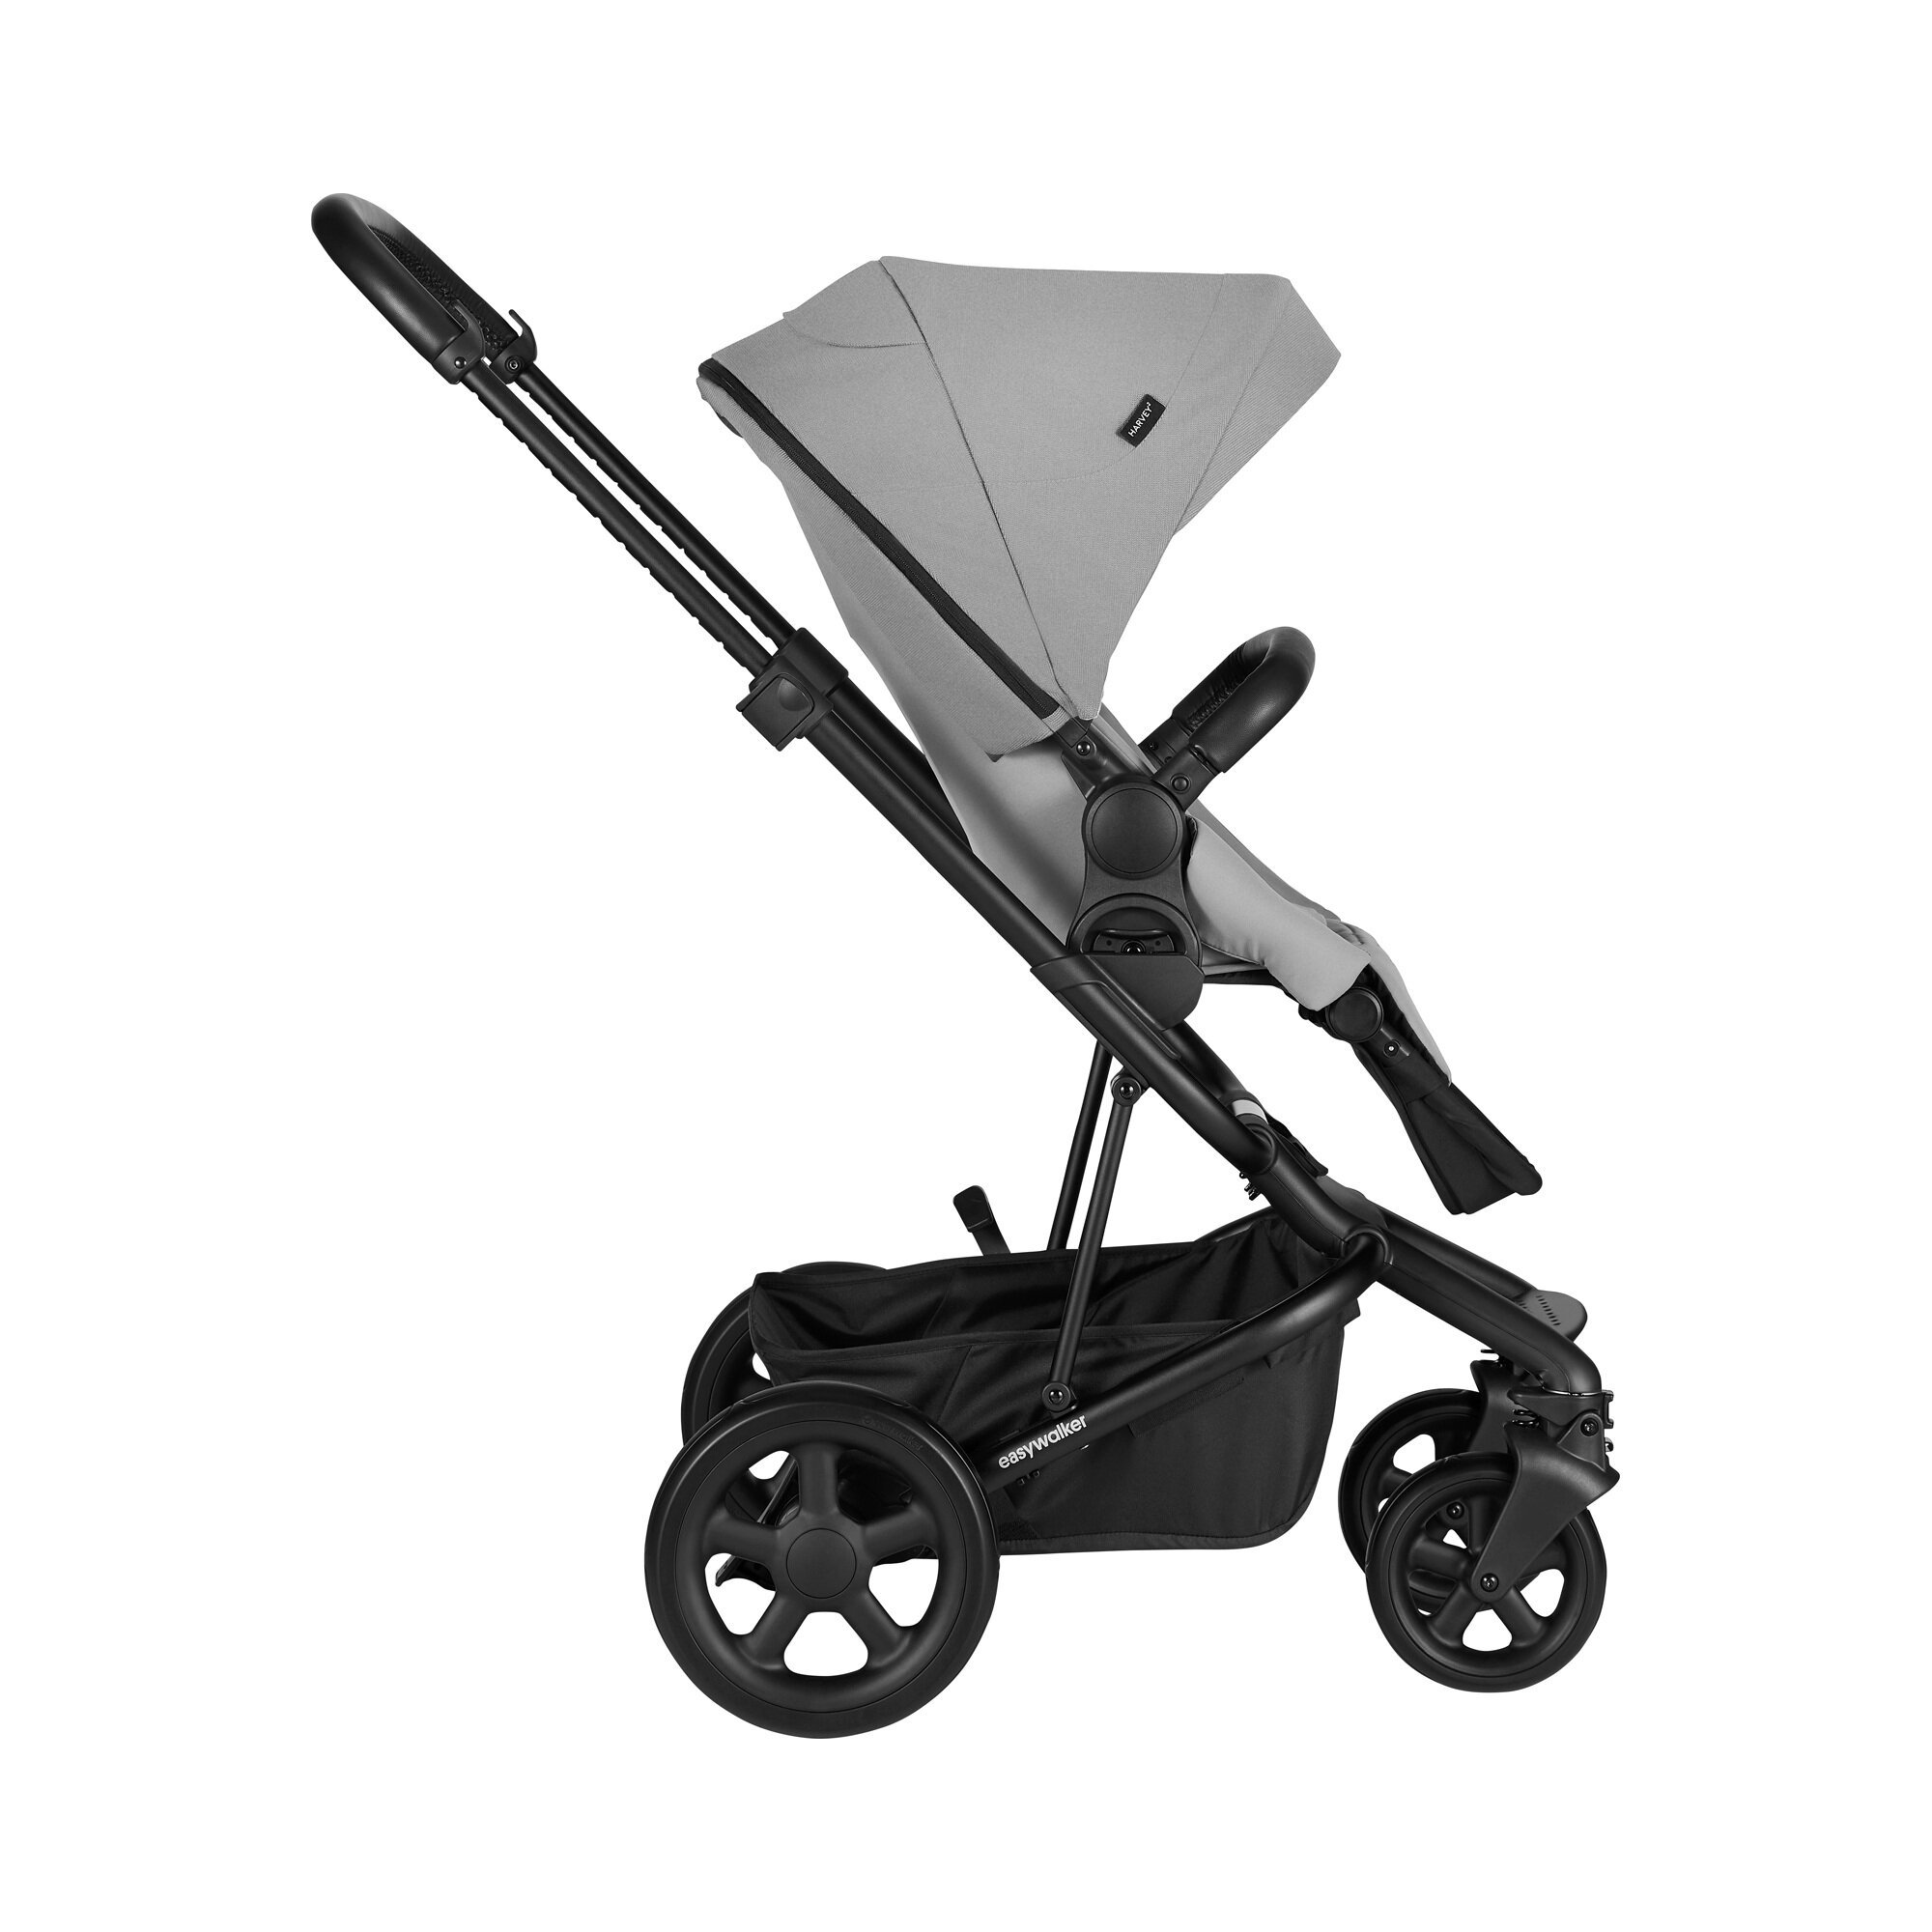 easywalker-harvey-kinderwagen-grau